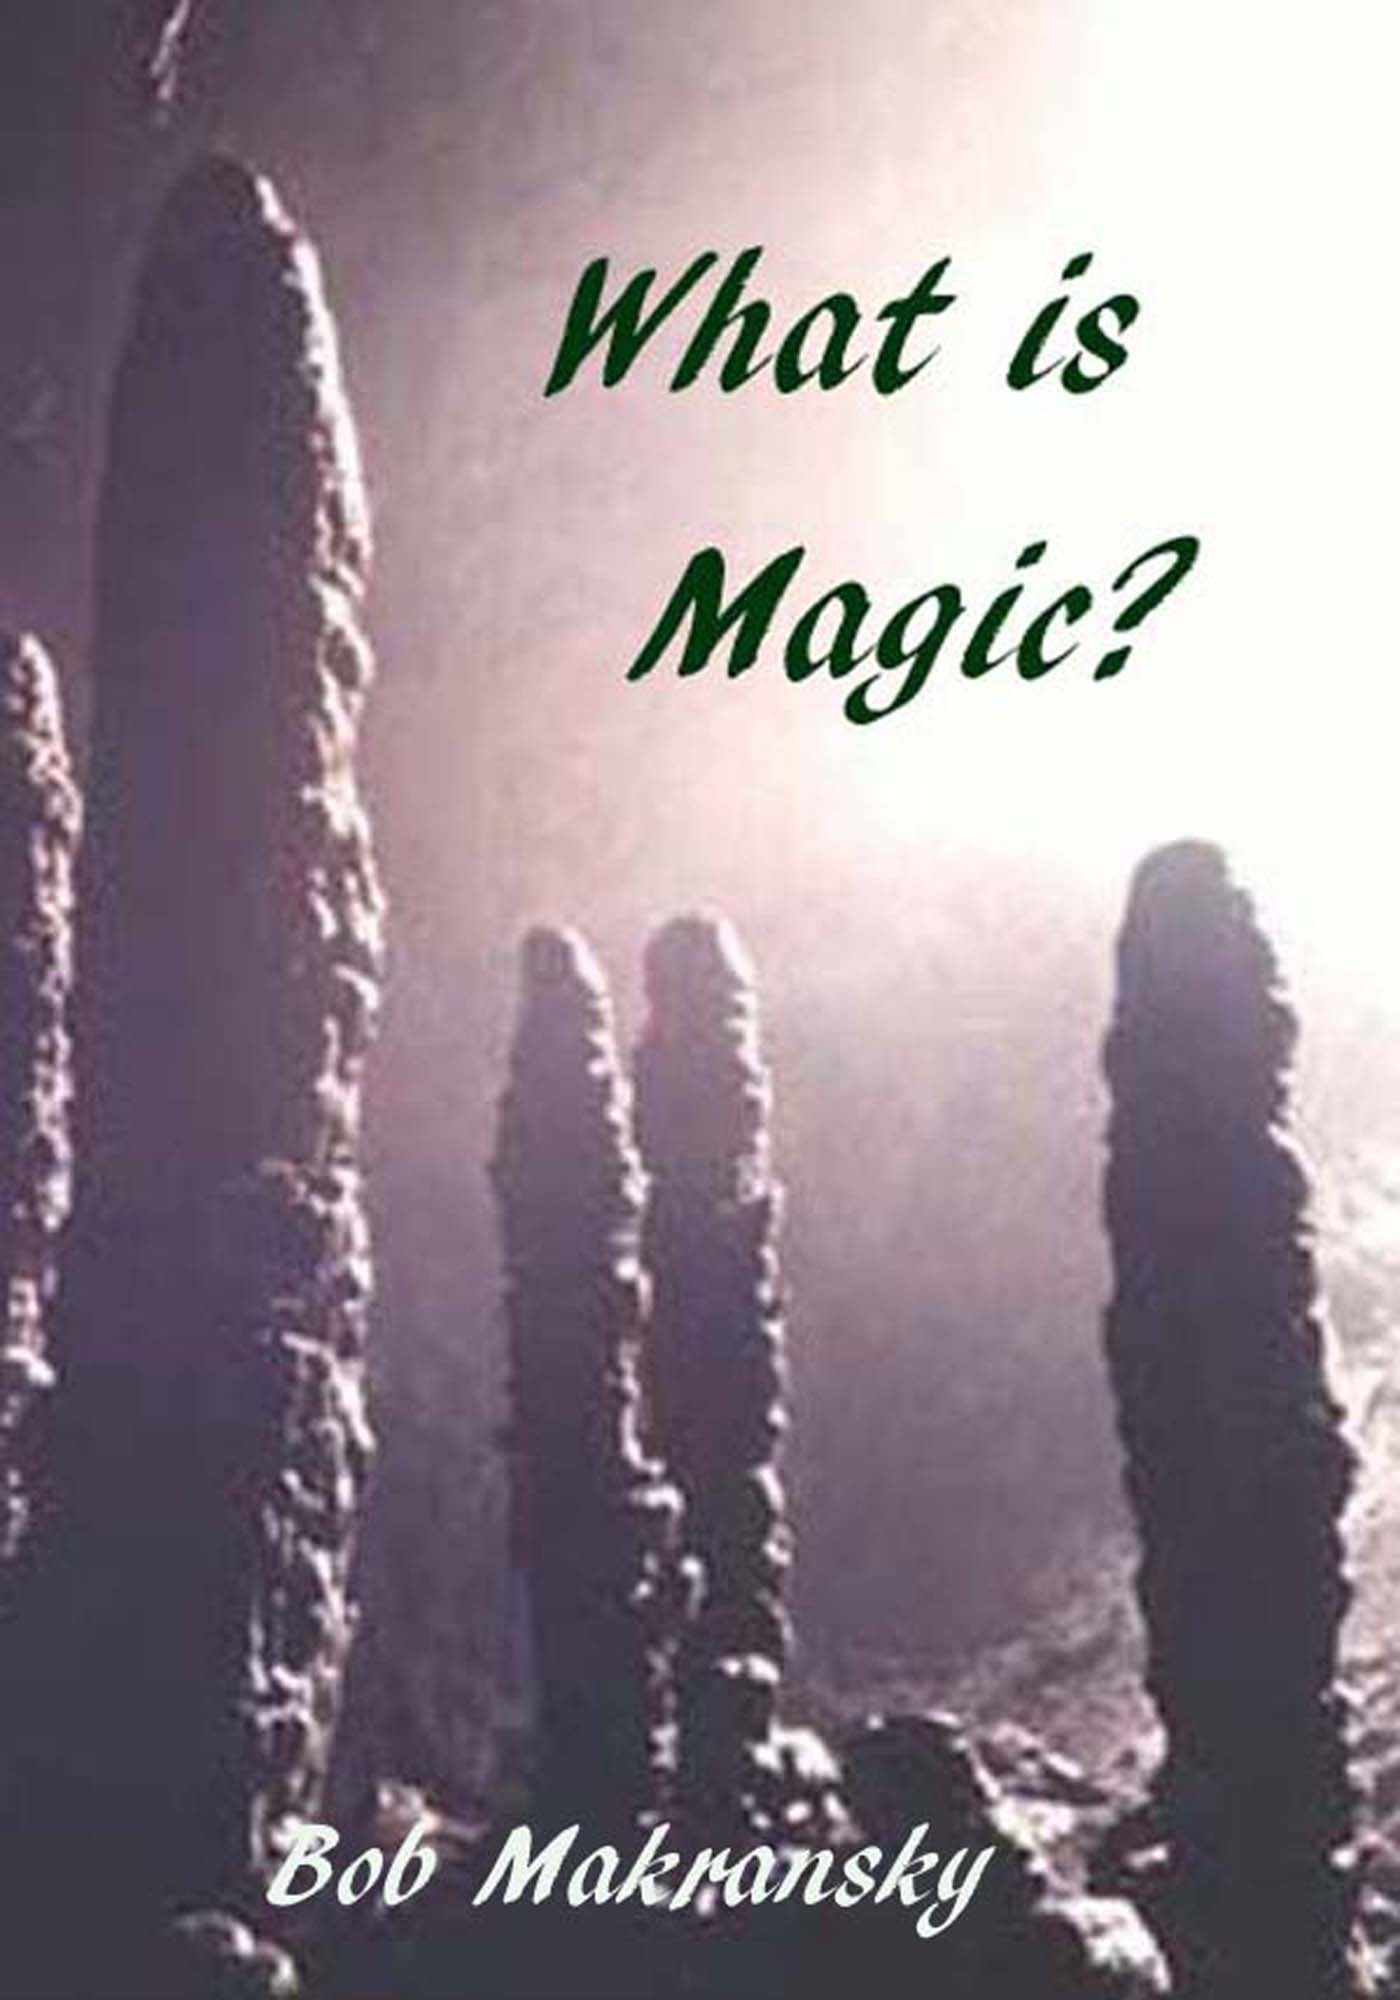 What is Magic?